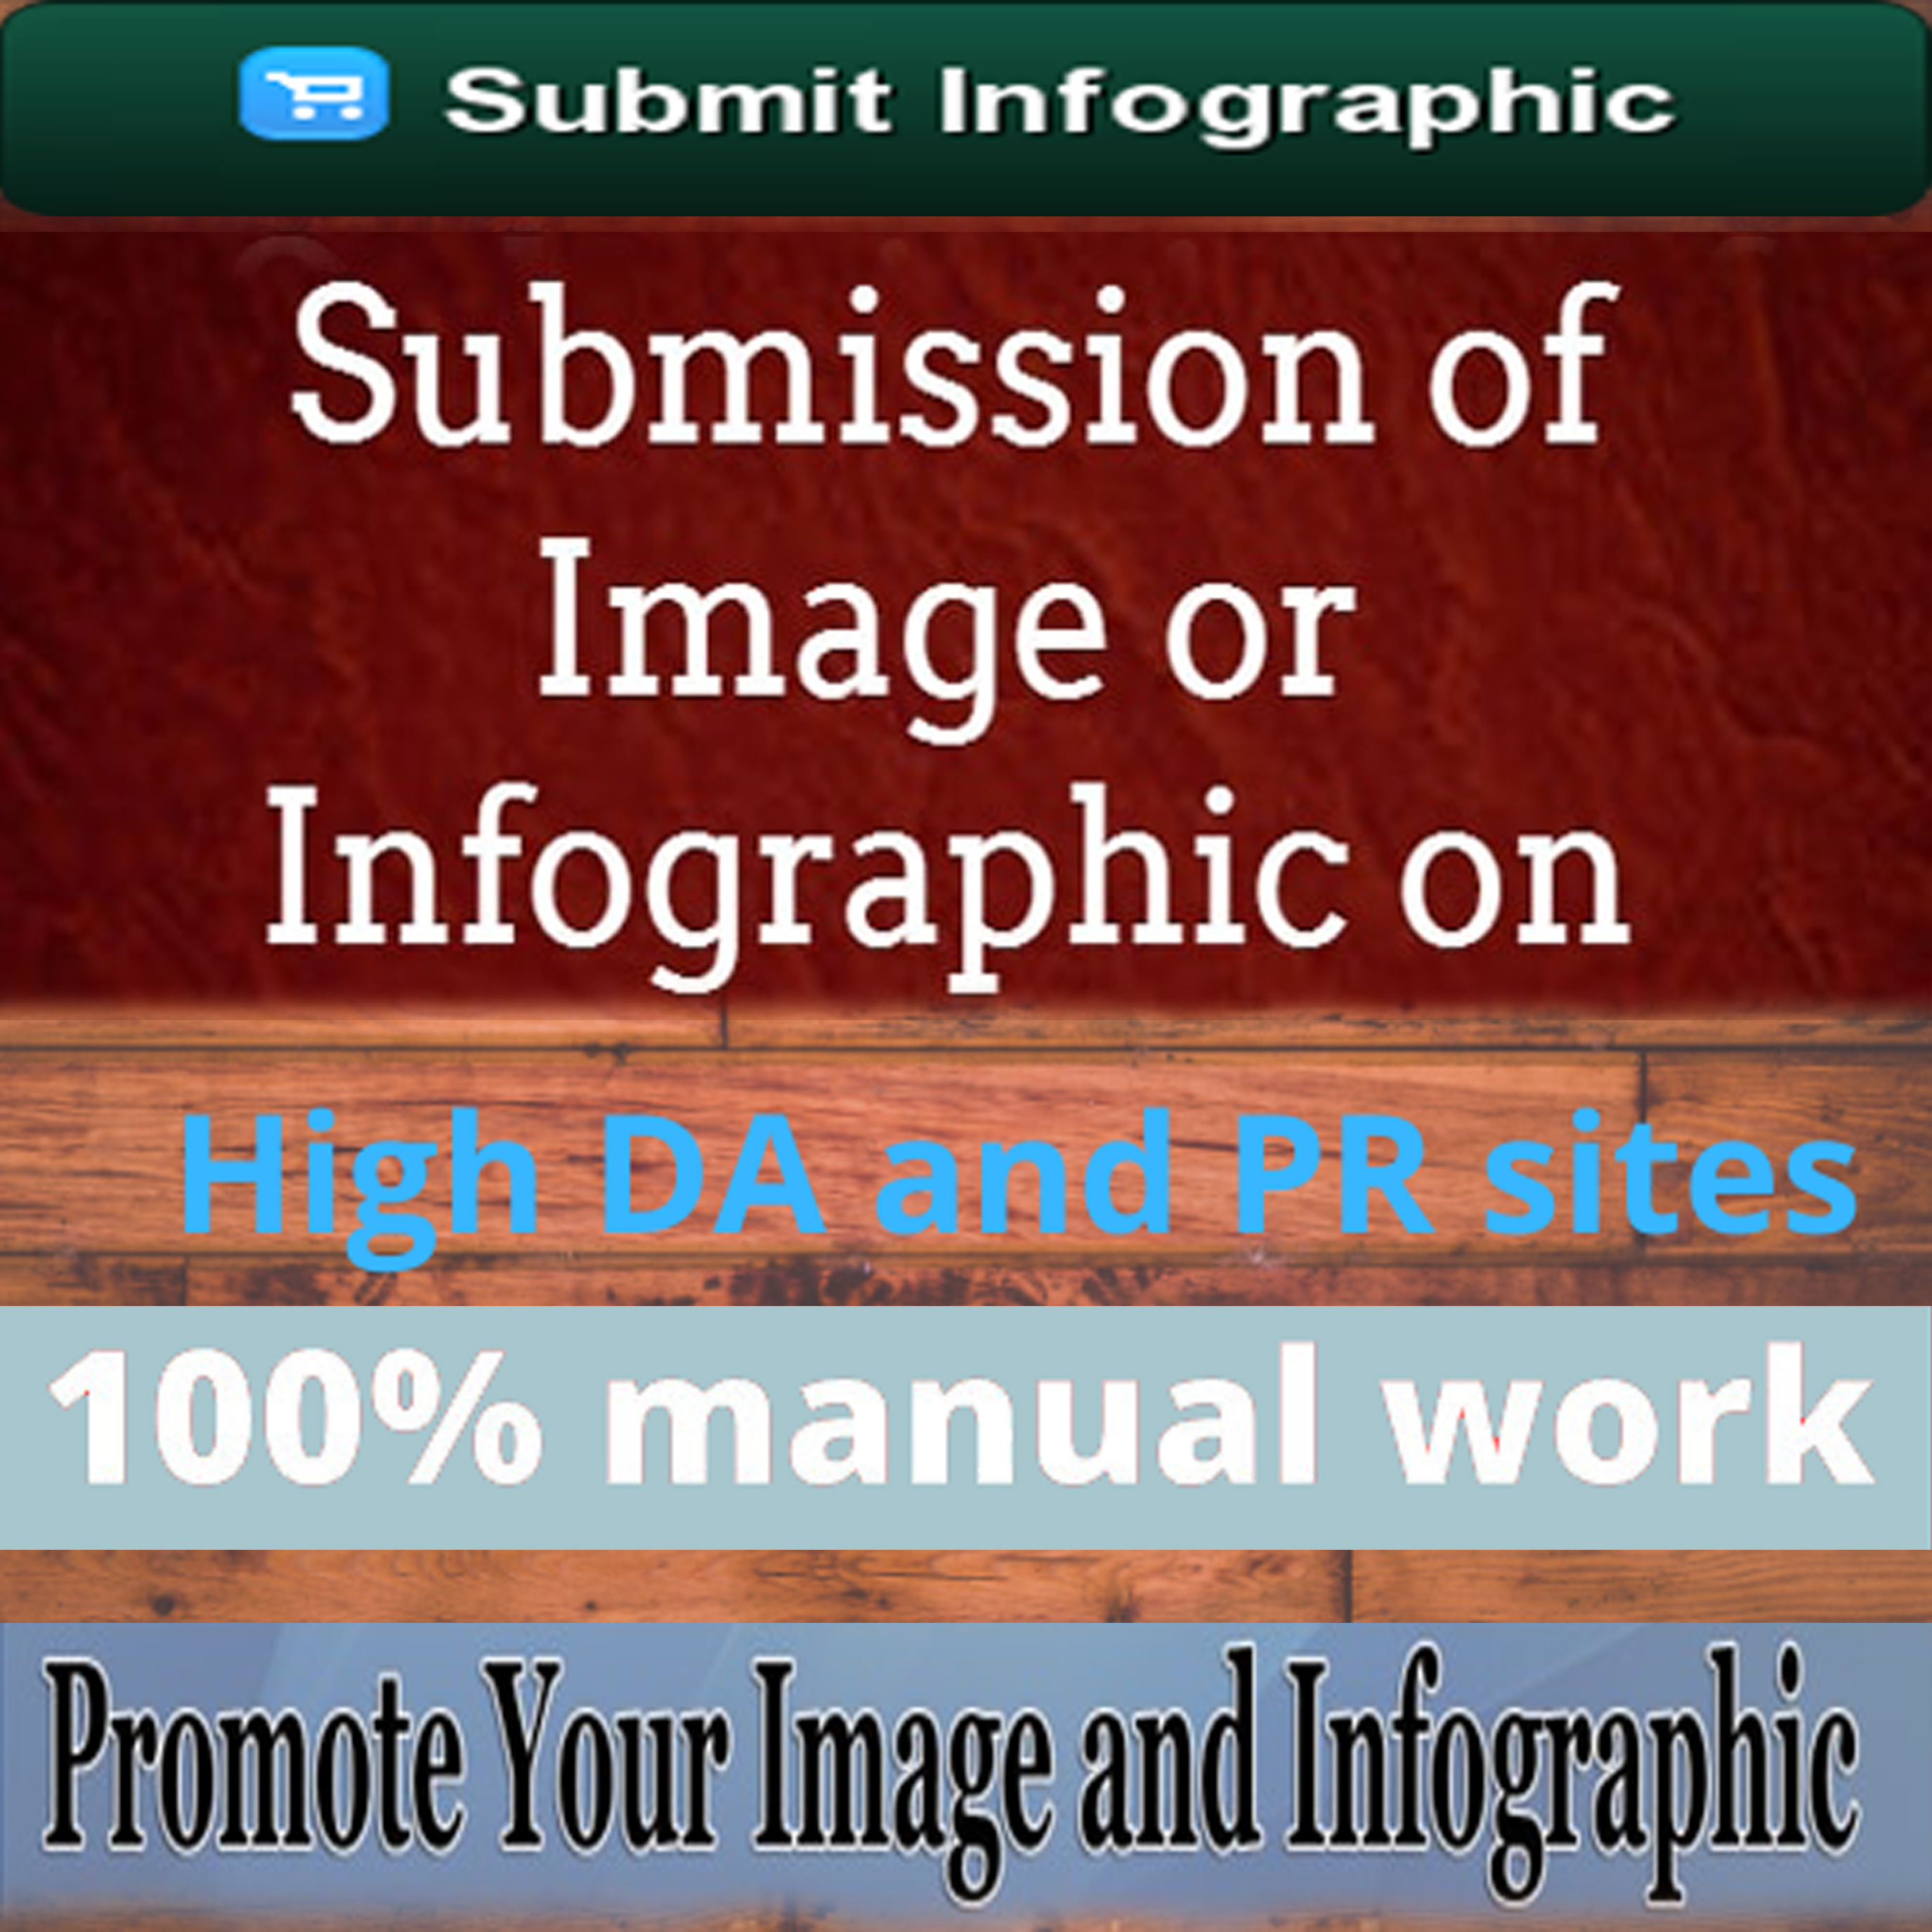 I will do 80 infographics submission on image sharing site